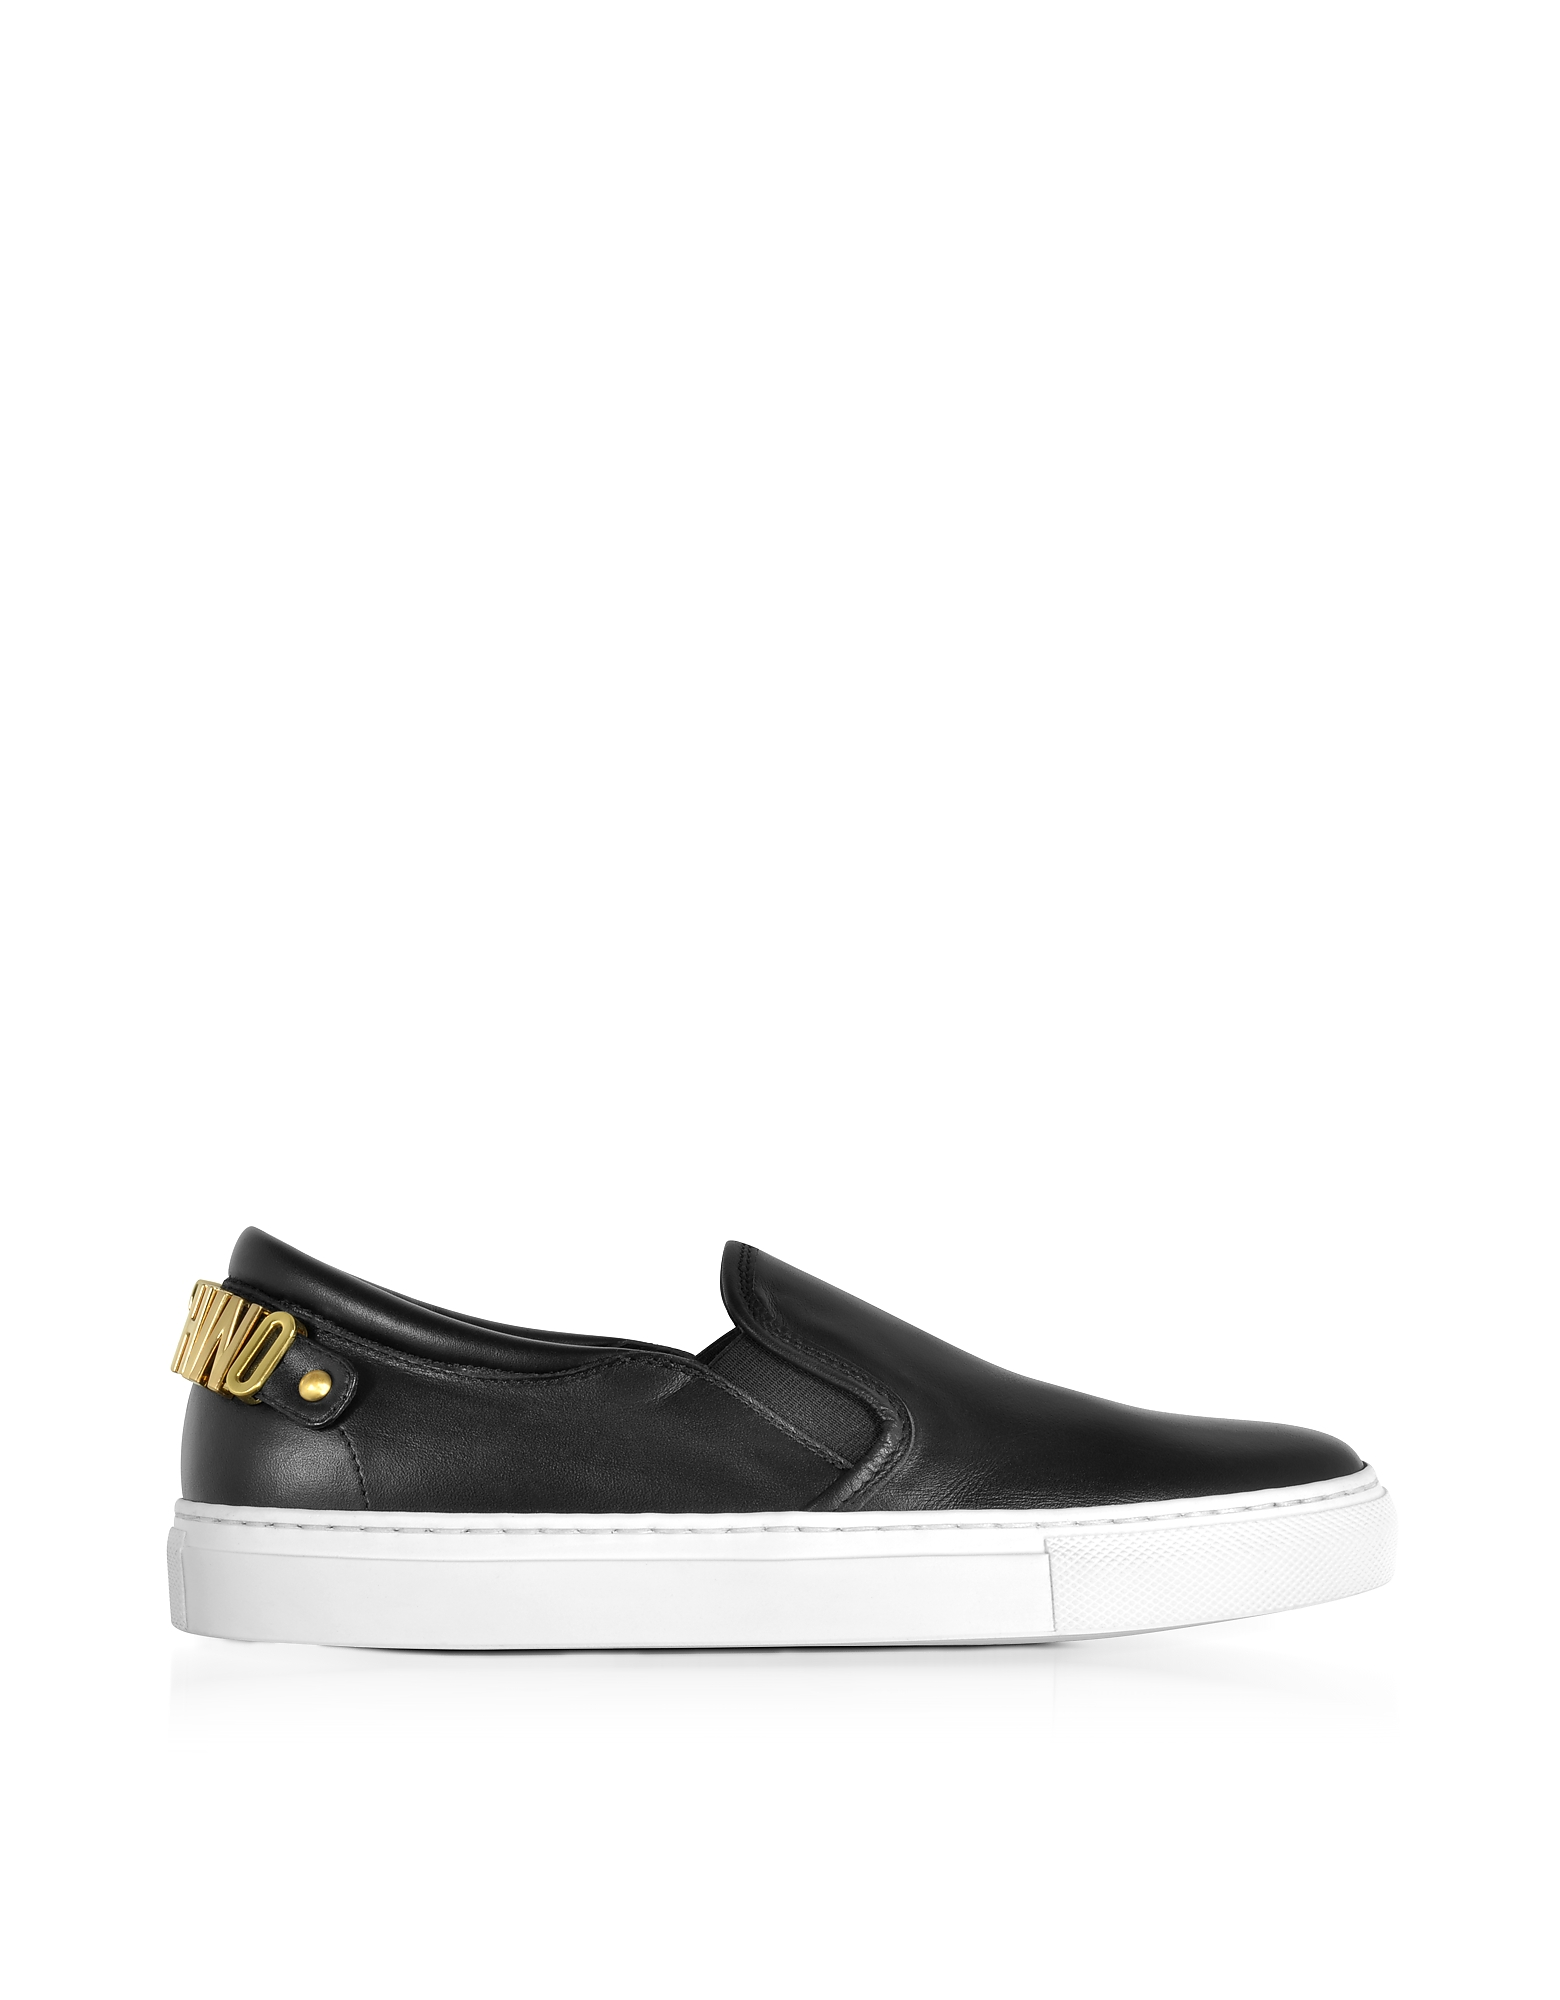 Moschino Shoes, Black Nappa Leather Slip On Sneakers w/Golden Signature